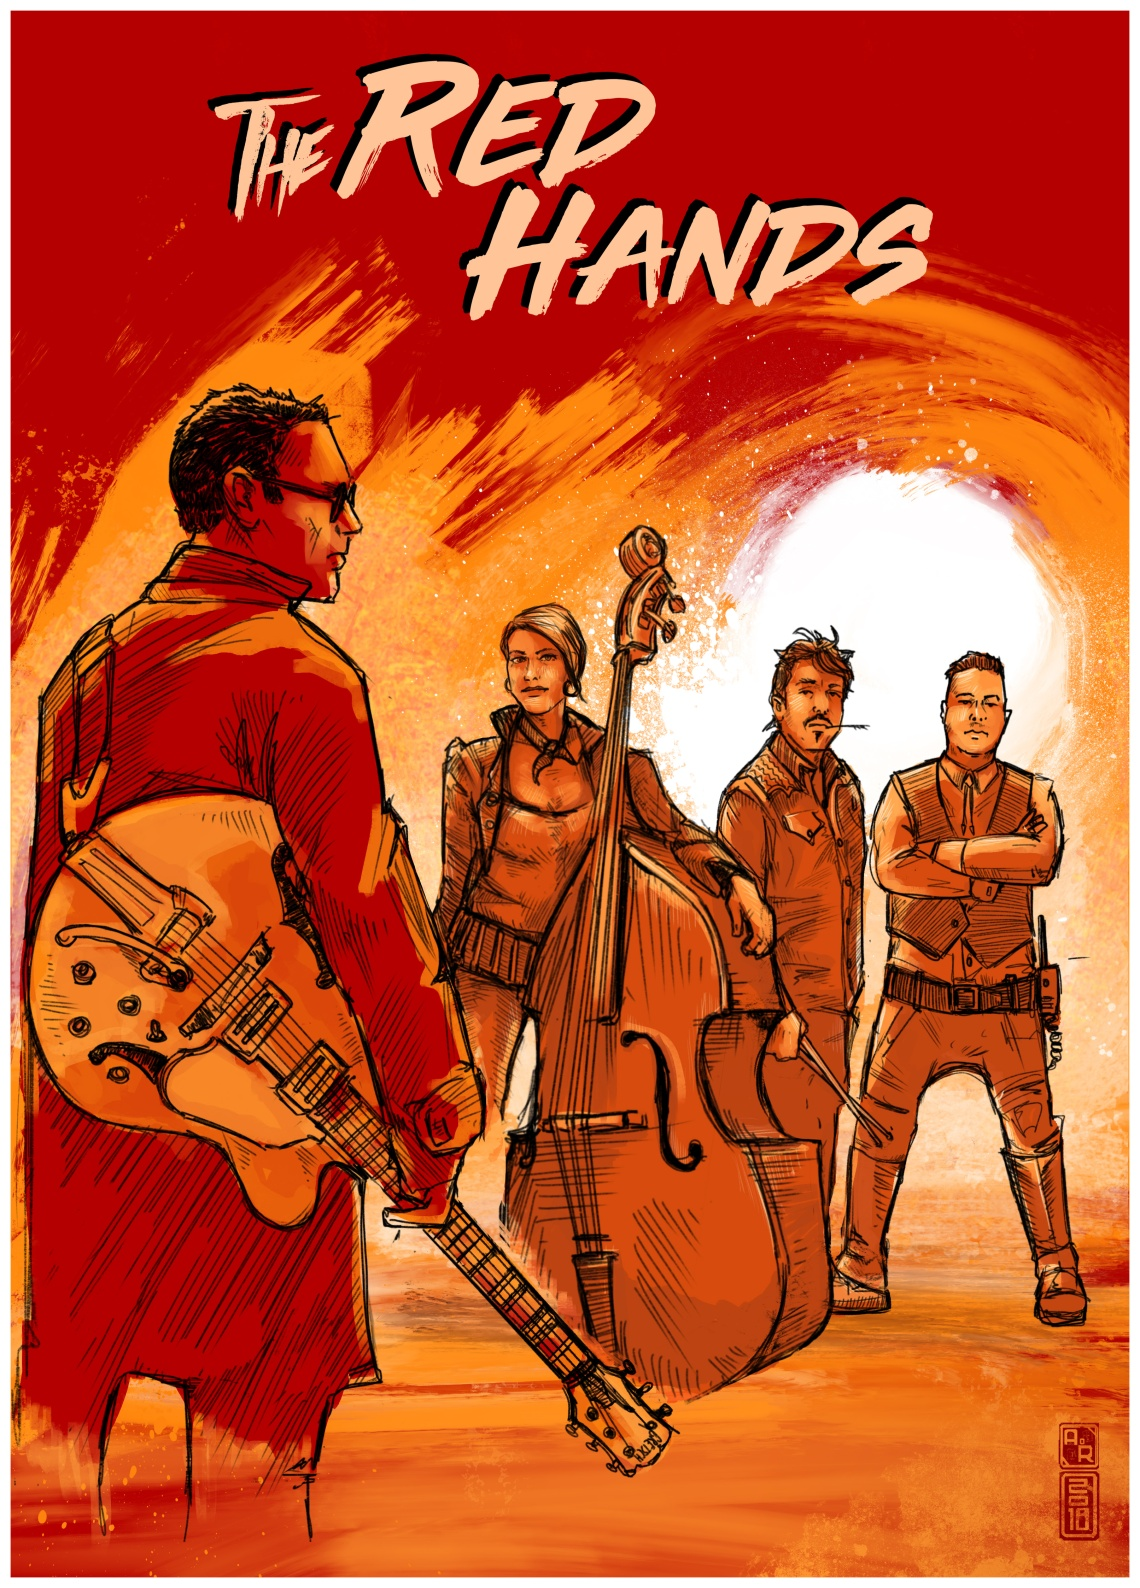 The Red Hands image.jpg